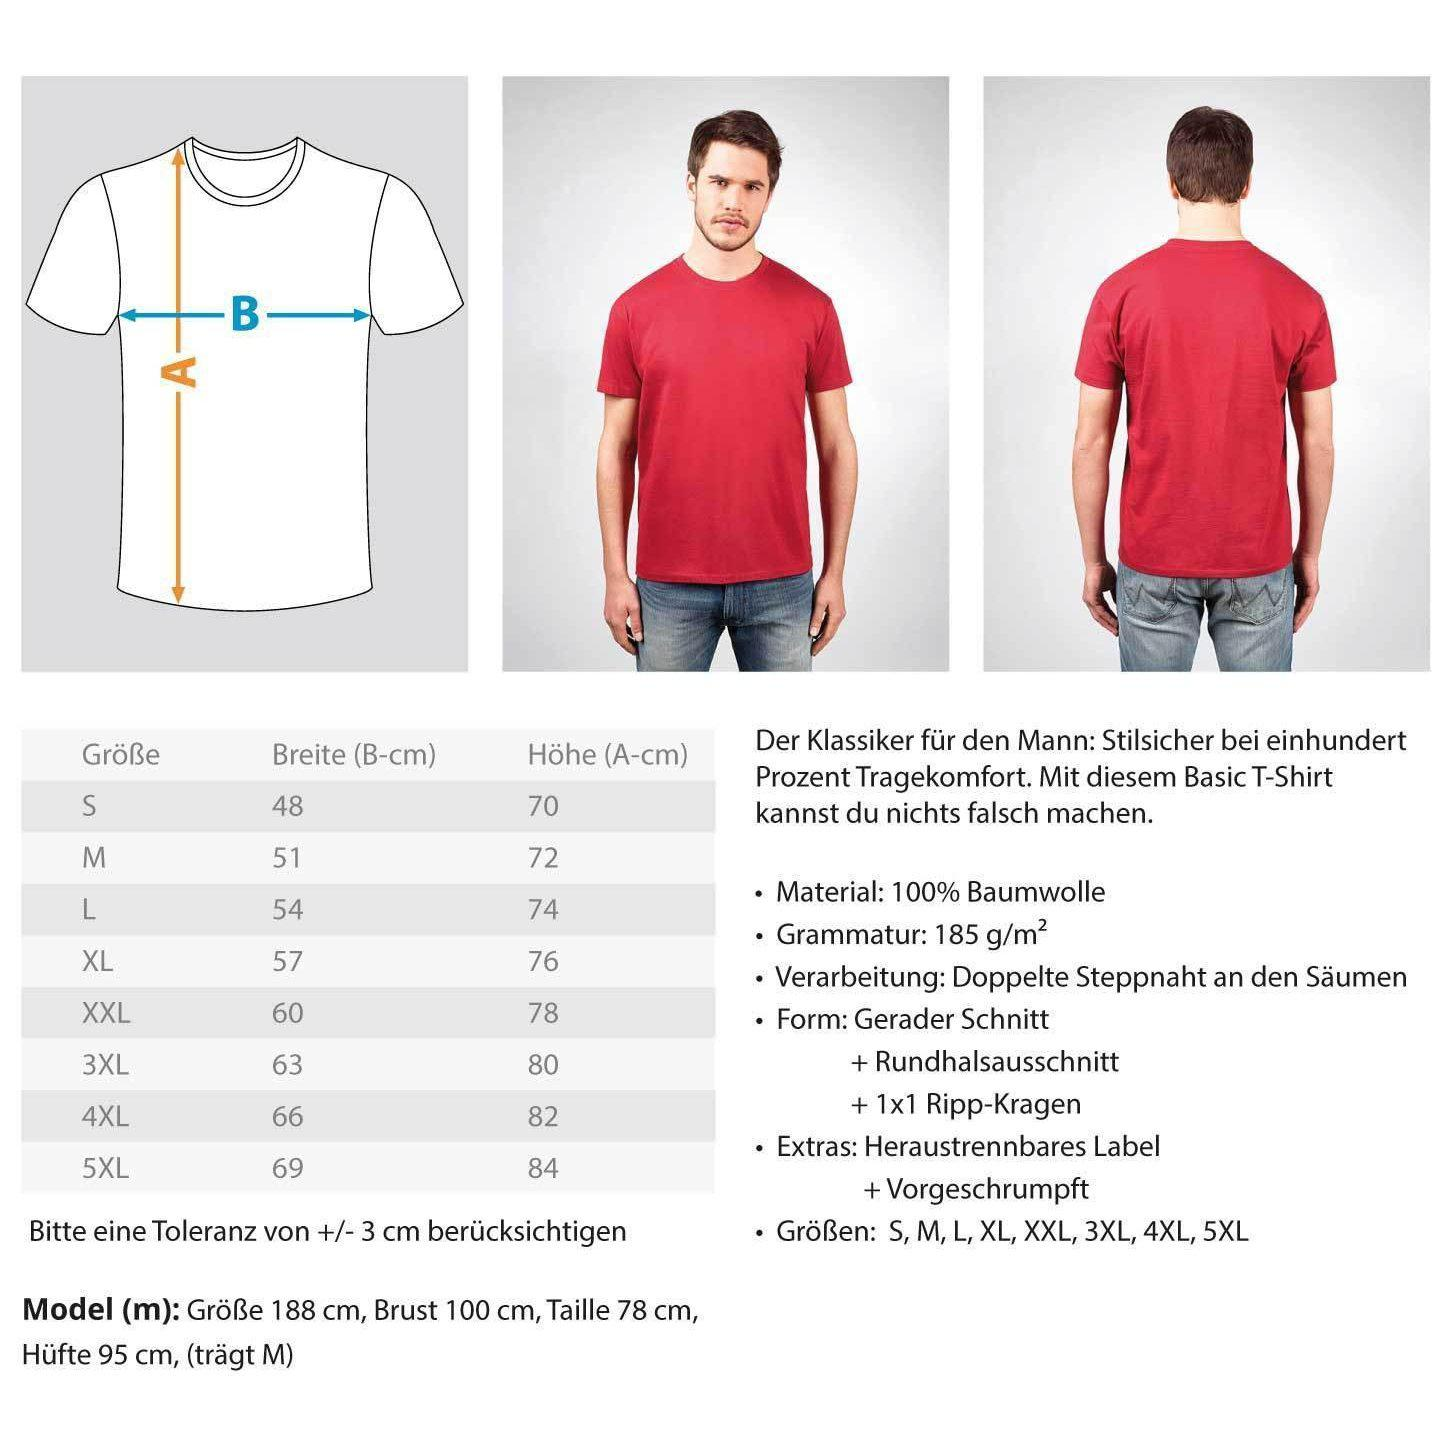 Alice In Wonderland Indie Swag - Rave On!® - Men Shirt Men Basic T-Shirt - Rave On!® the club & techno scene shop for cool young fashion streetwear style & fashion outfits + sexy festival 420 stuff